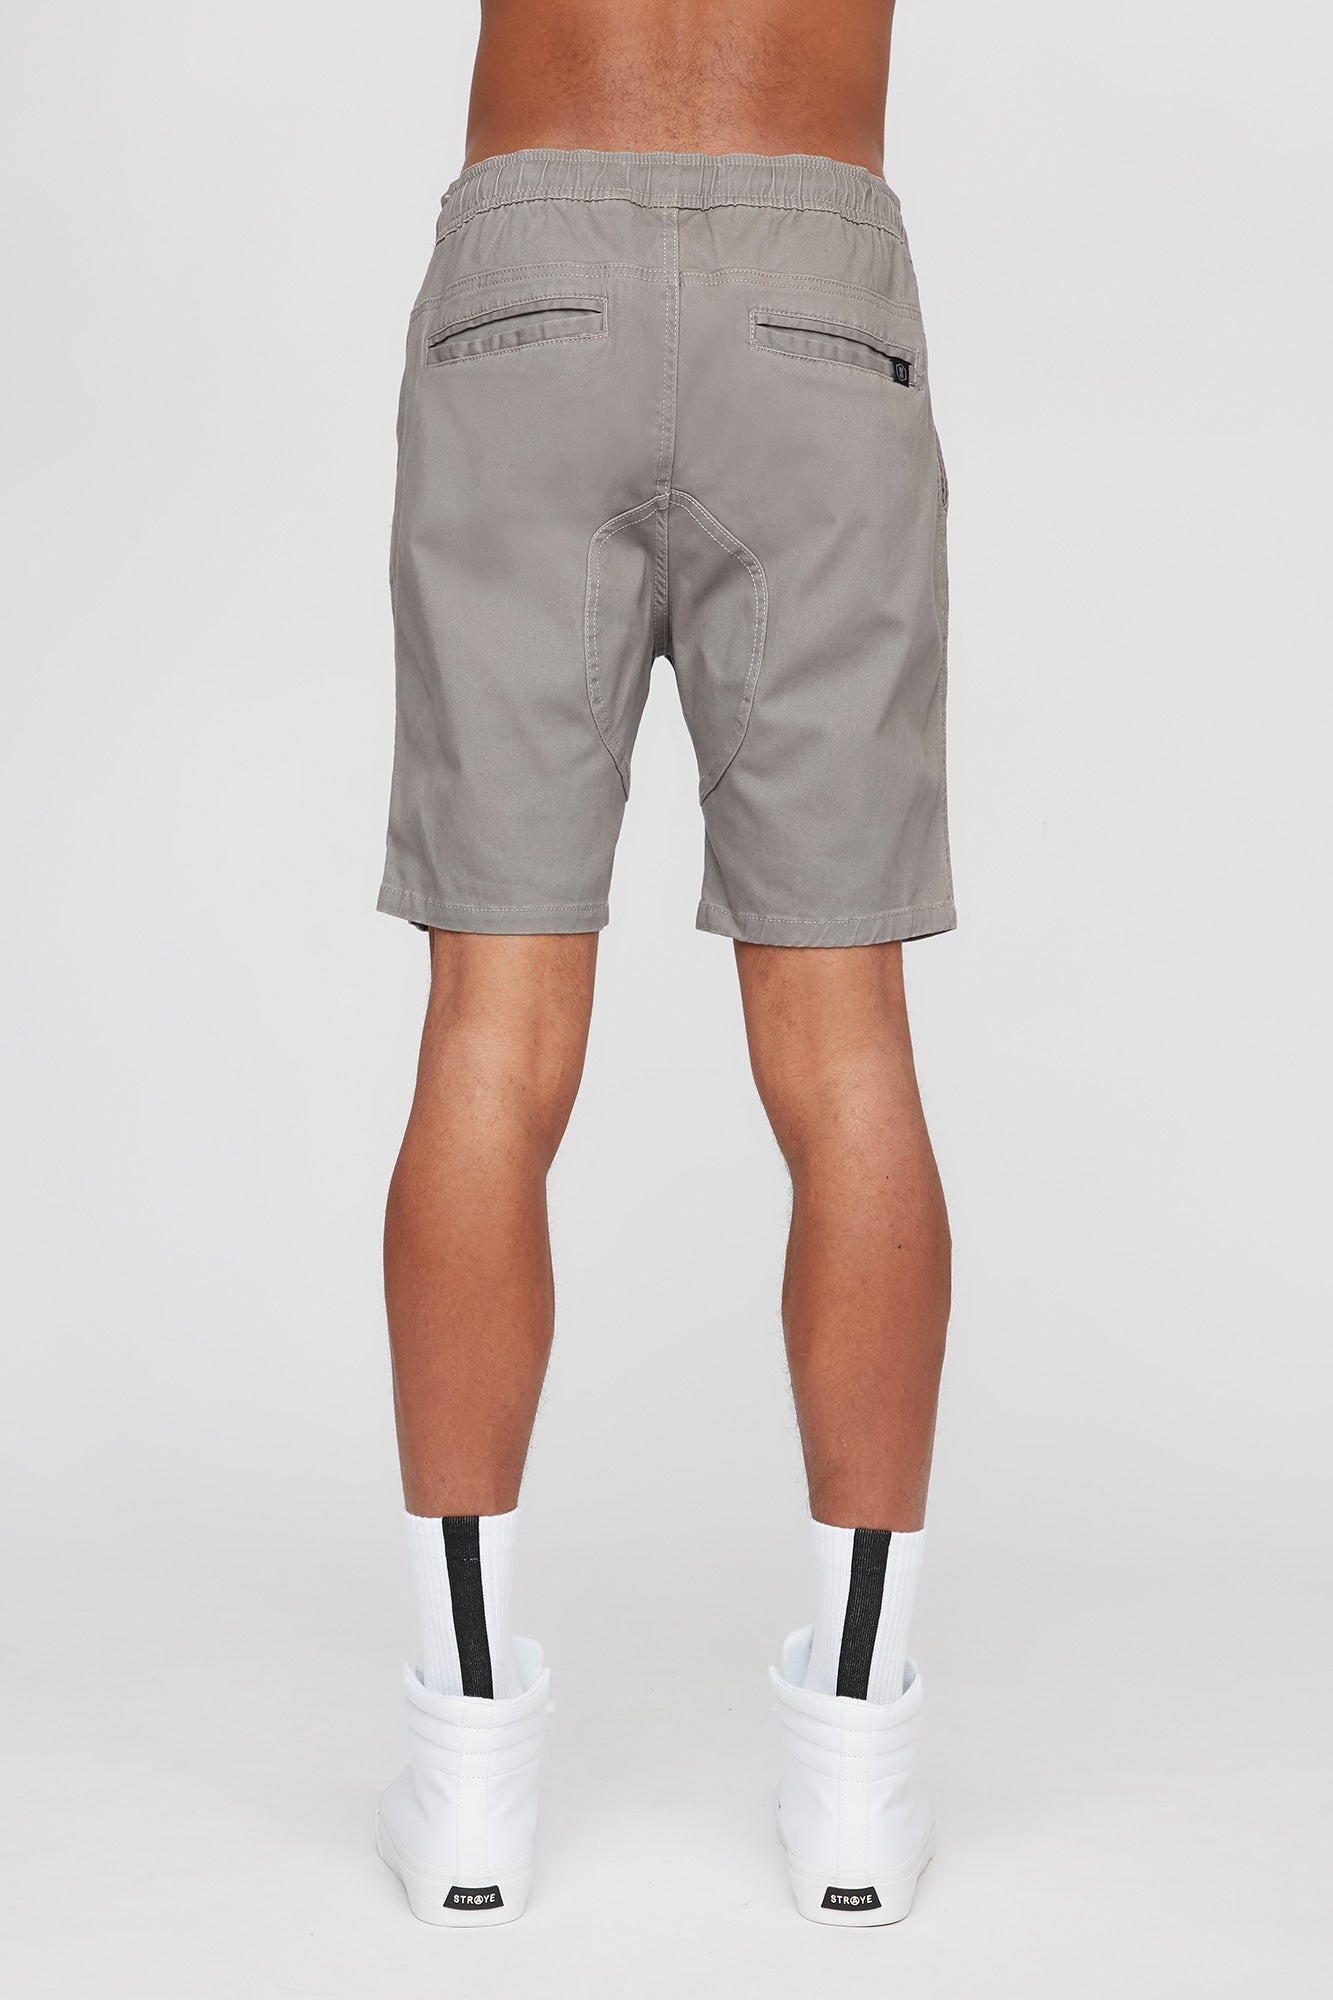 West 49 Guys Grey Gusset Jogger